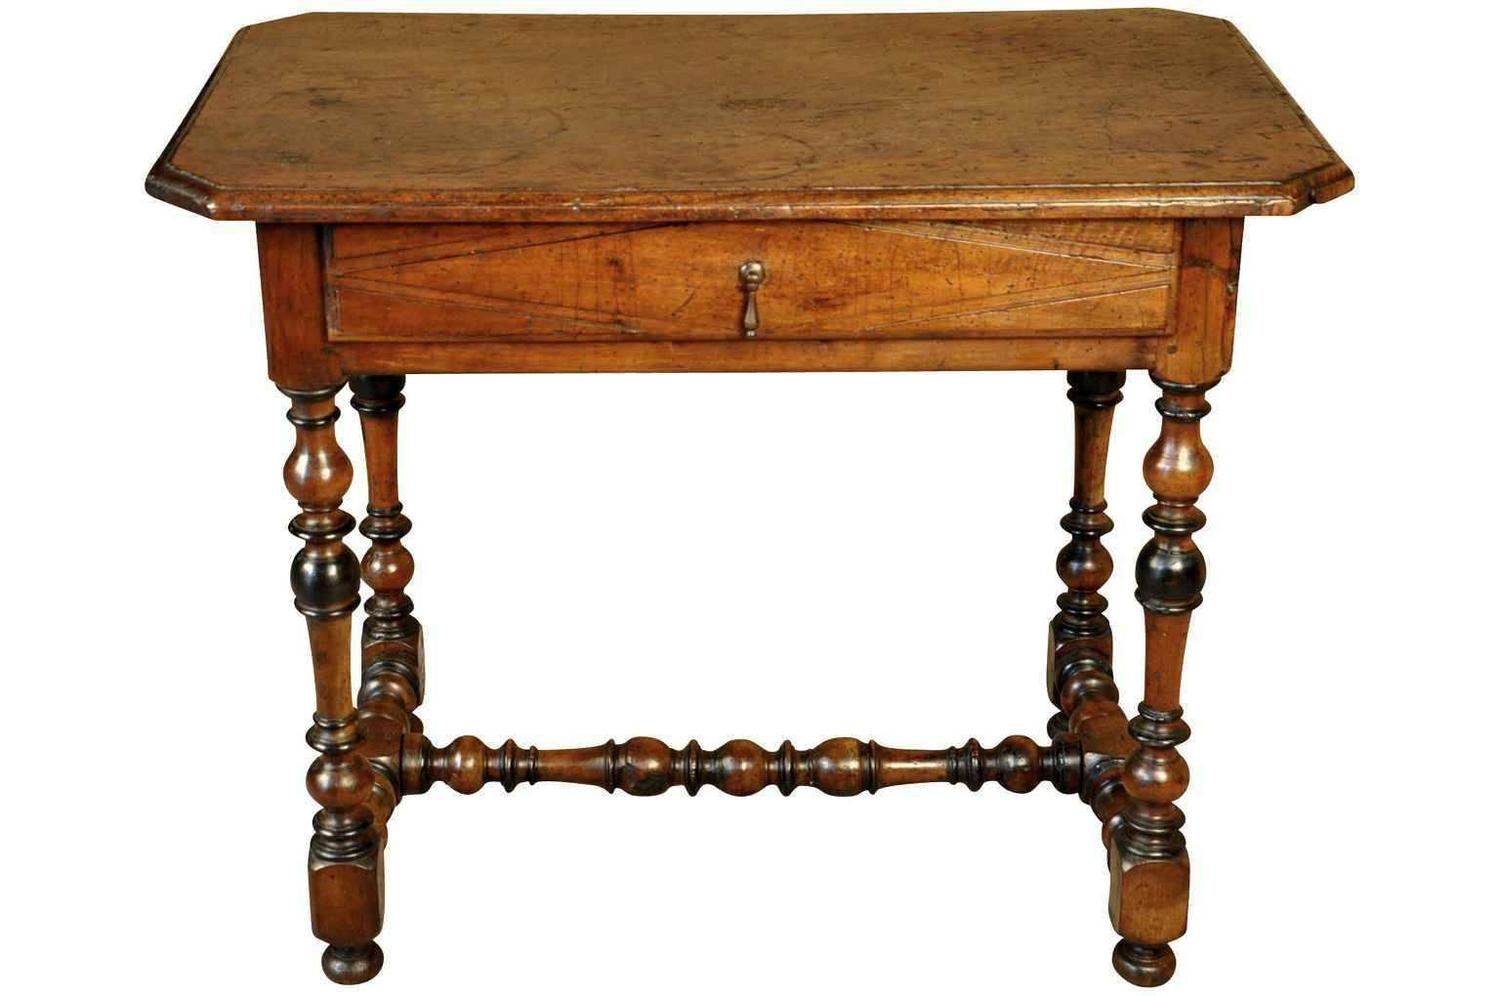 french 17th century louis xiii period side table at 1stdibs. Black Bedroom Furniture Sets. Home Design Ideas